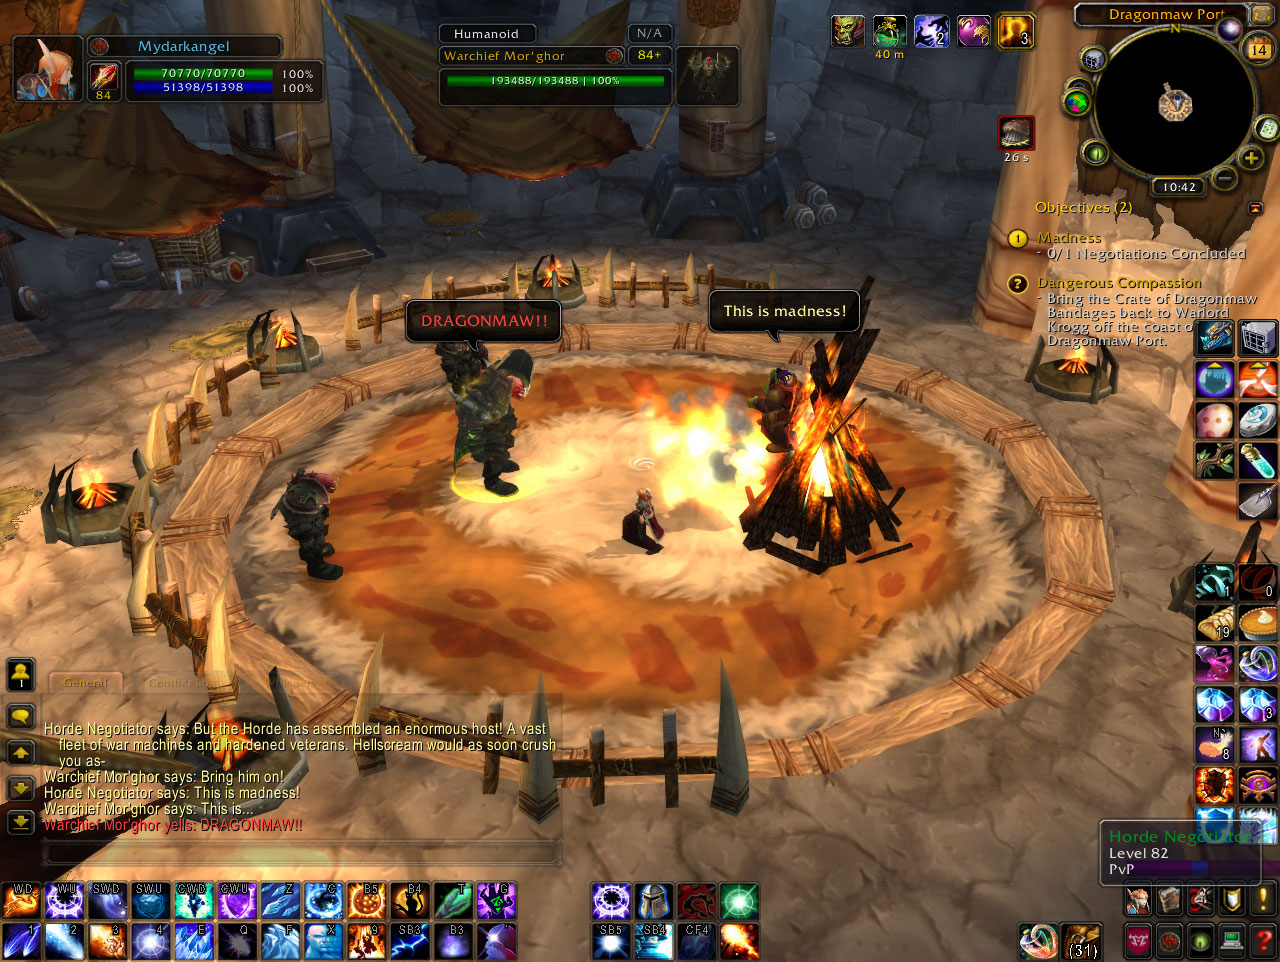 The Gaming Report - DirectX 11 in WoW - Soft32 Blog